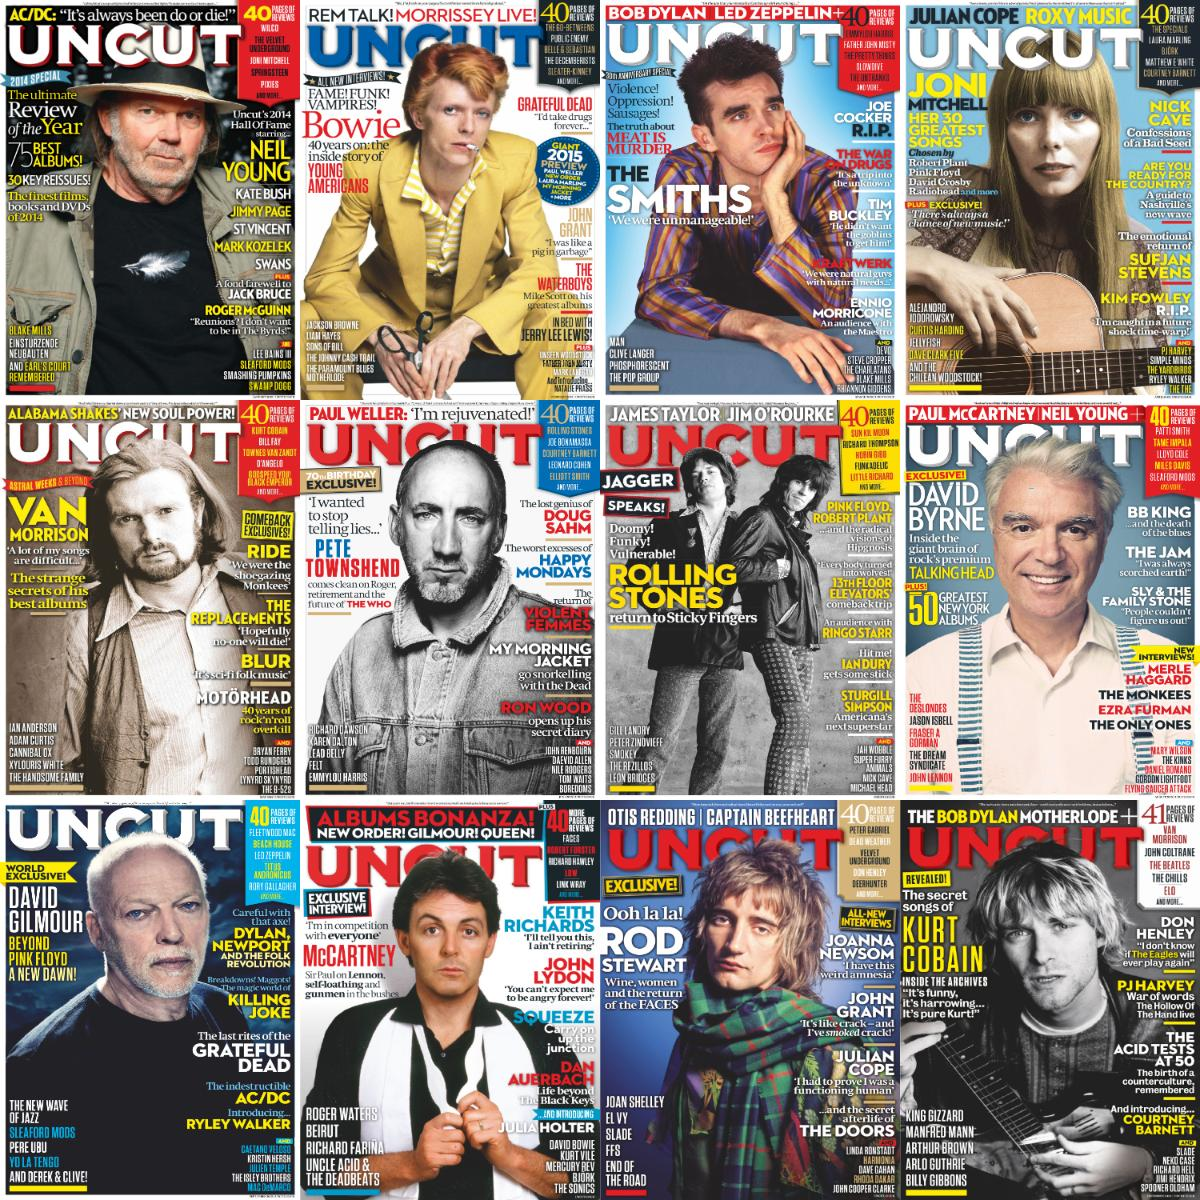 Uncut 2015 Full Year Issues Collection